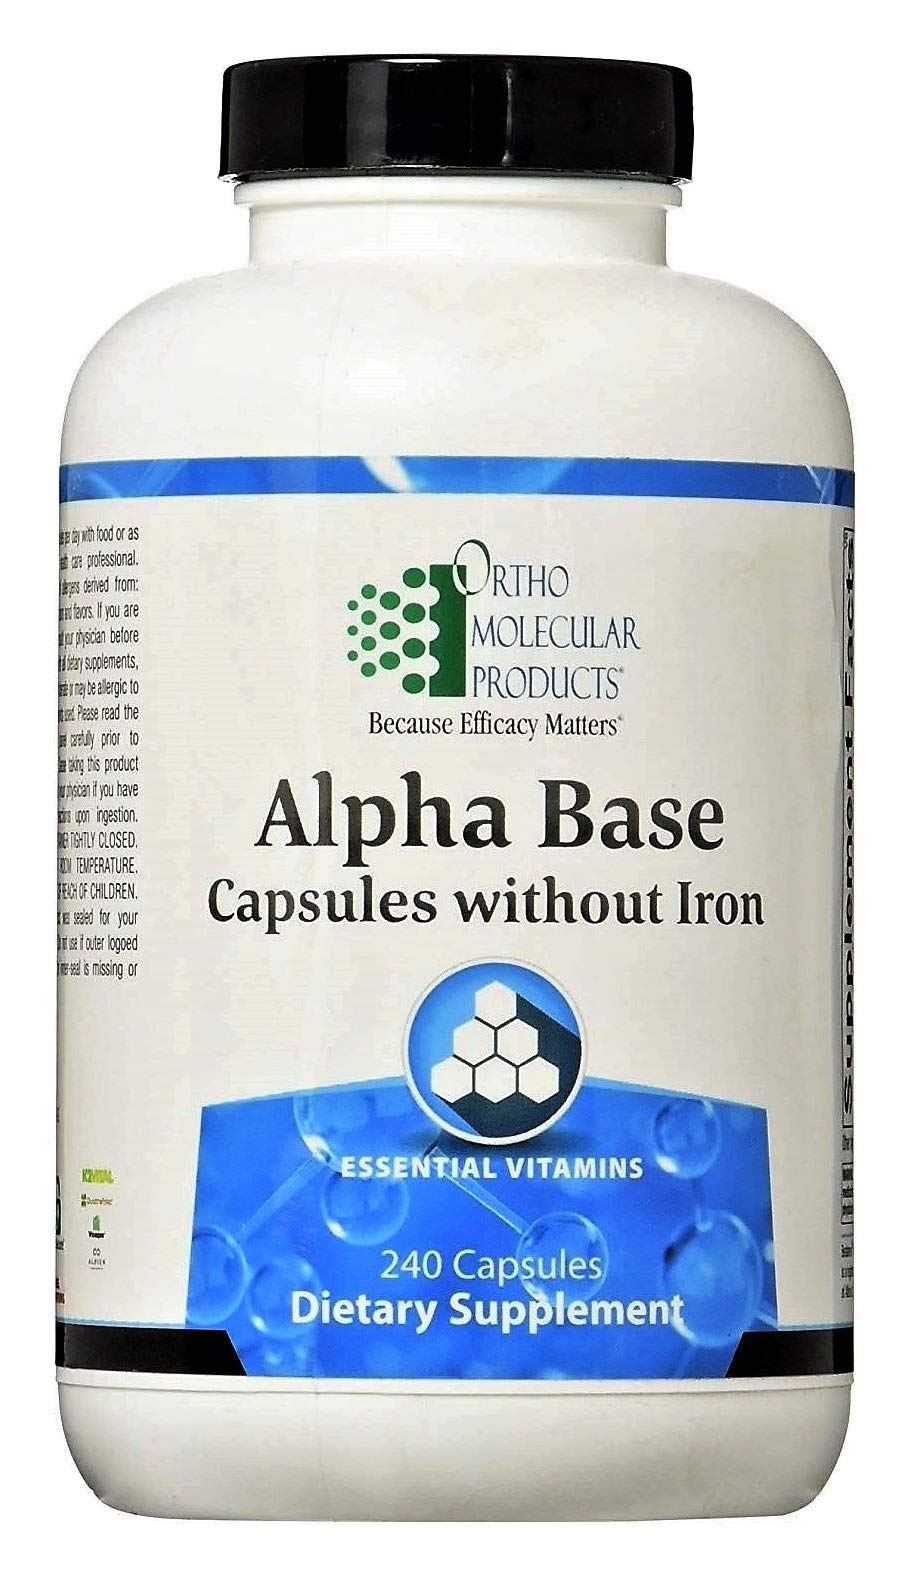 Ortho Molecular Products Alpha Base Caps Without Iron Capsules, 240 Count